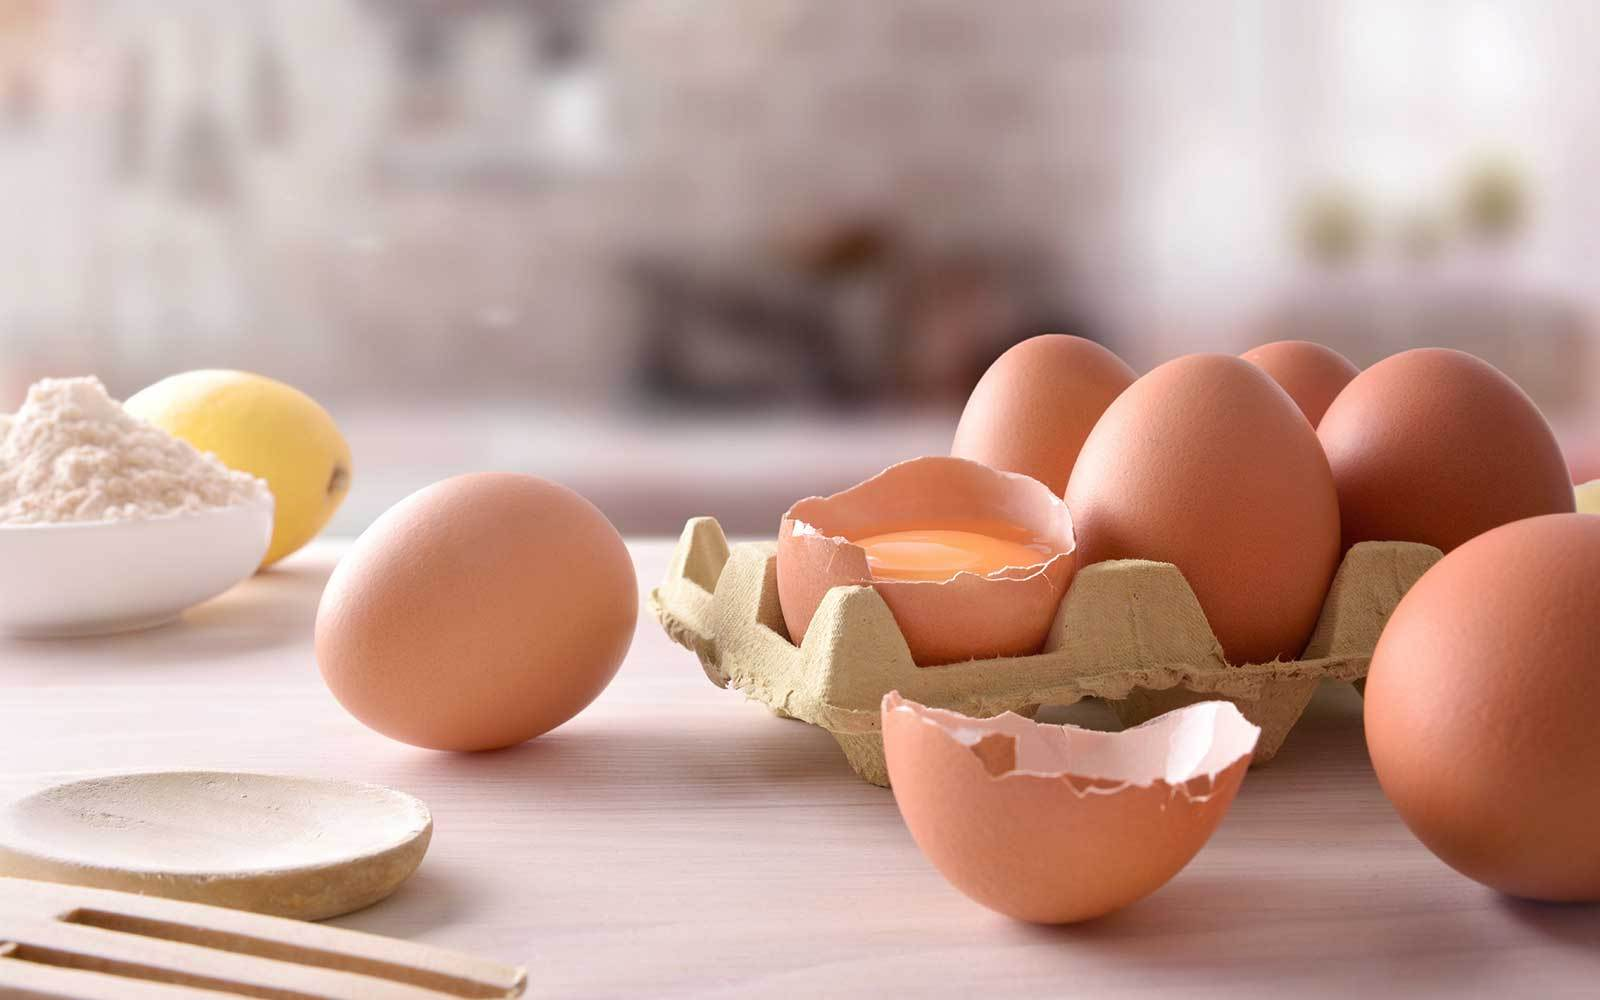 Eggs are EGG-cellent!